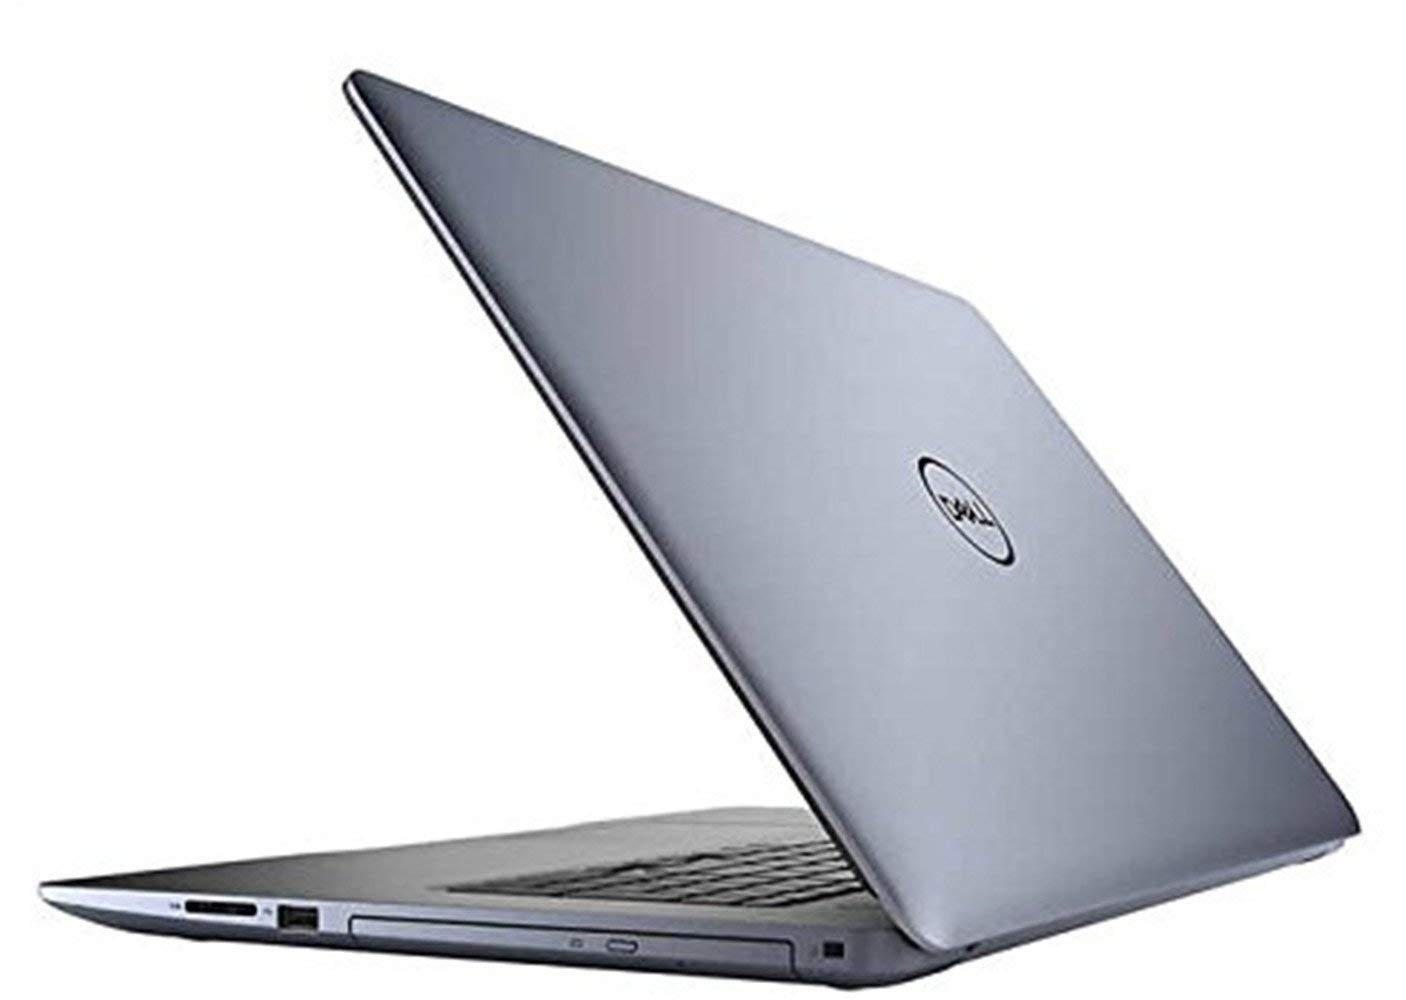 Dell Inspiron 15 5000, 15.6 inch FHD Touchscreen Inspiron Laptop Computer, Dell Laptop i5-8250U Intel 4-Core, 32GB RAM, 256GB SSD, 500GB HDD, WiFi DVD Bluetooth 4.2 Backlit Keyboard MAXXAUDIO Win 10